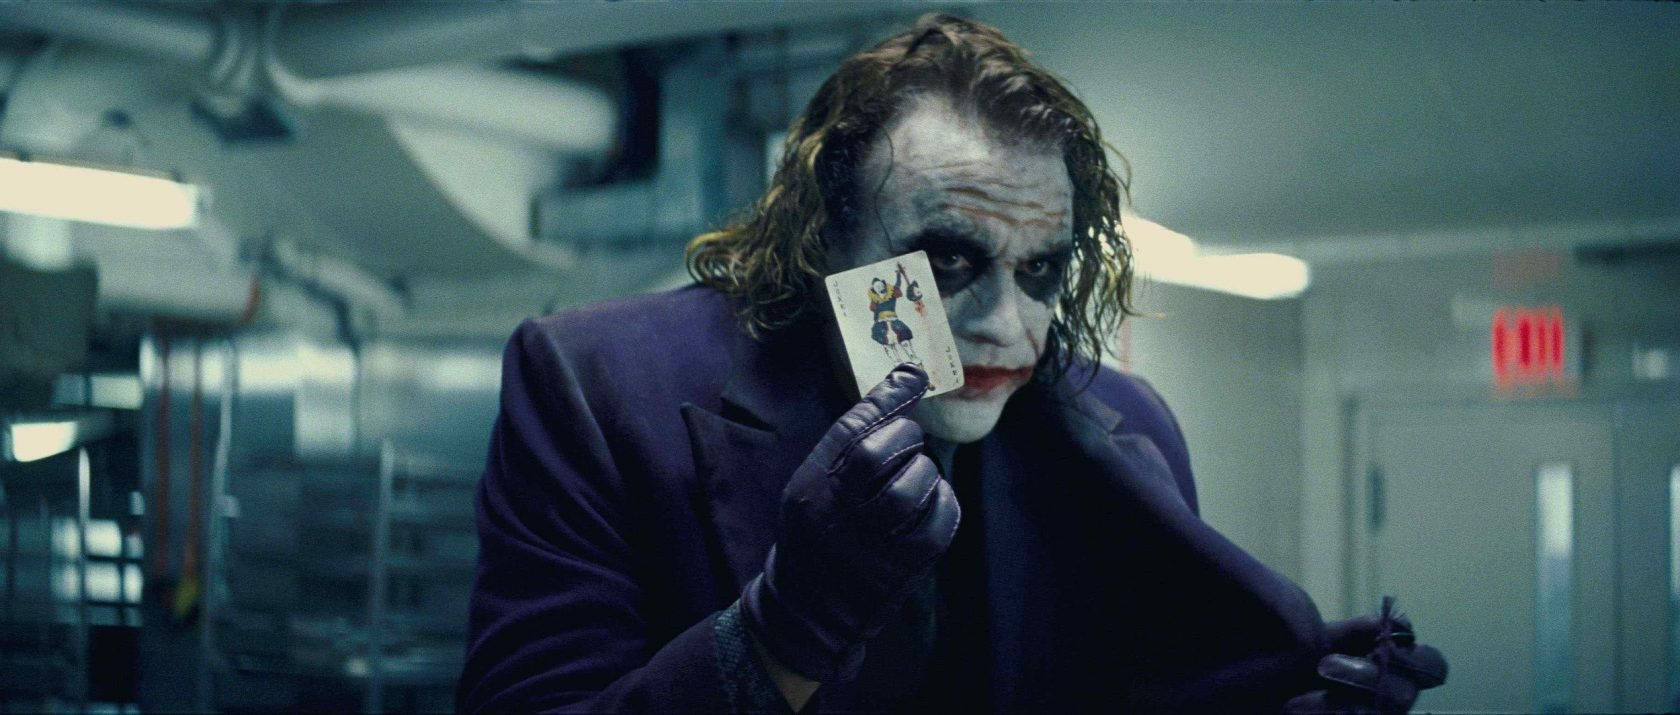 summer movies ranked, the dark knight 2008